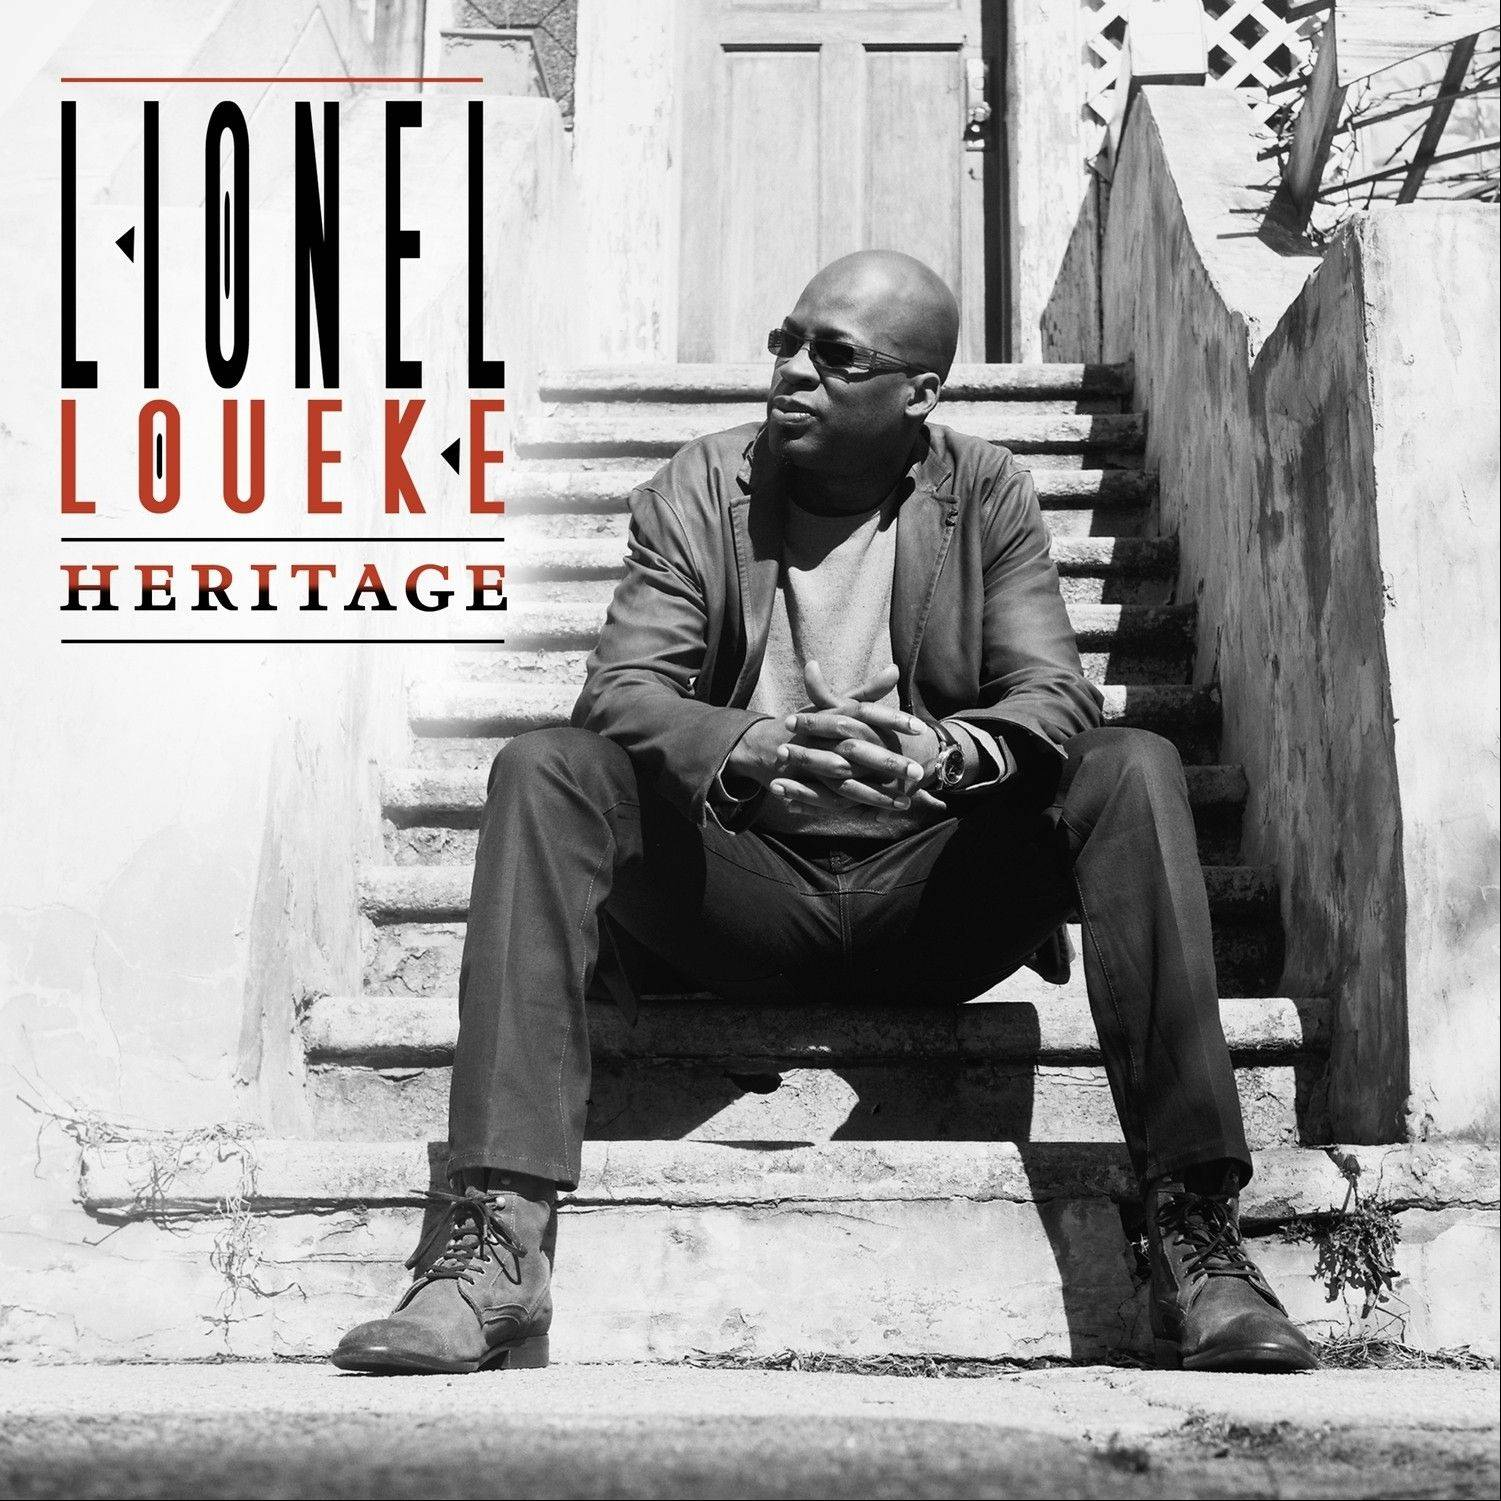 """Heritage"" by Lionel Loueke"